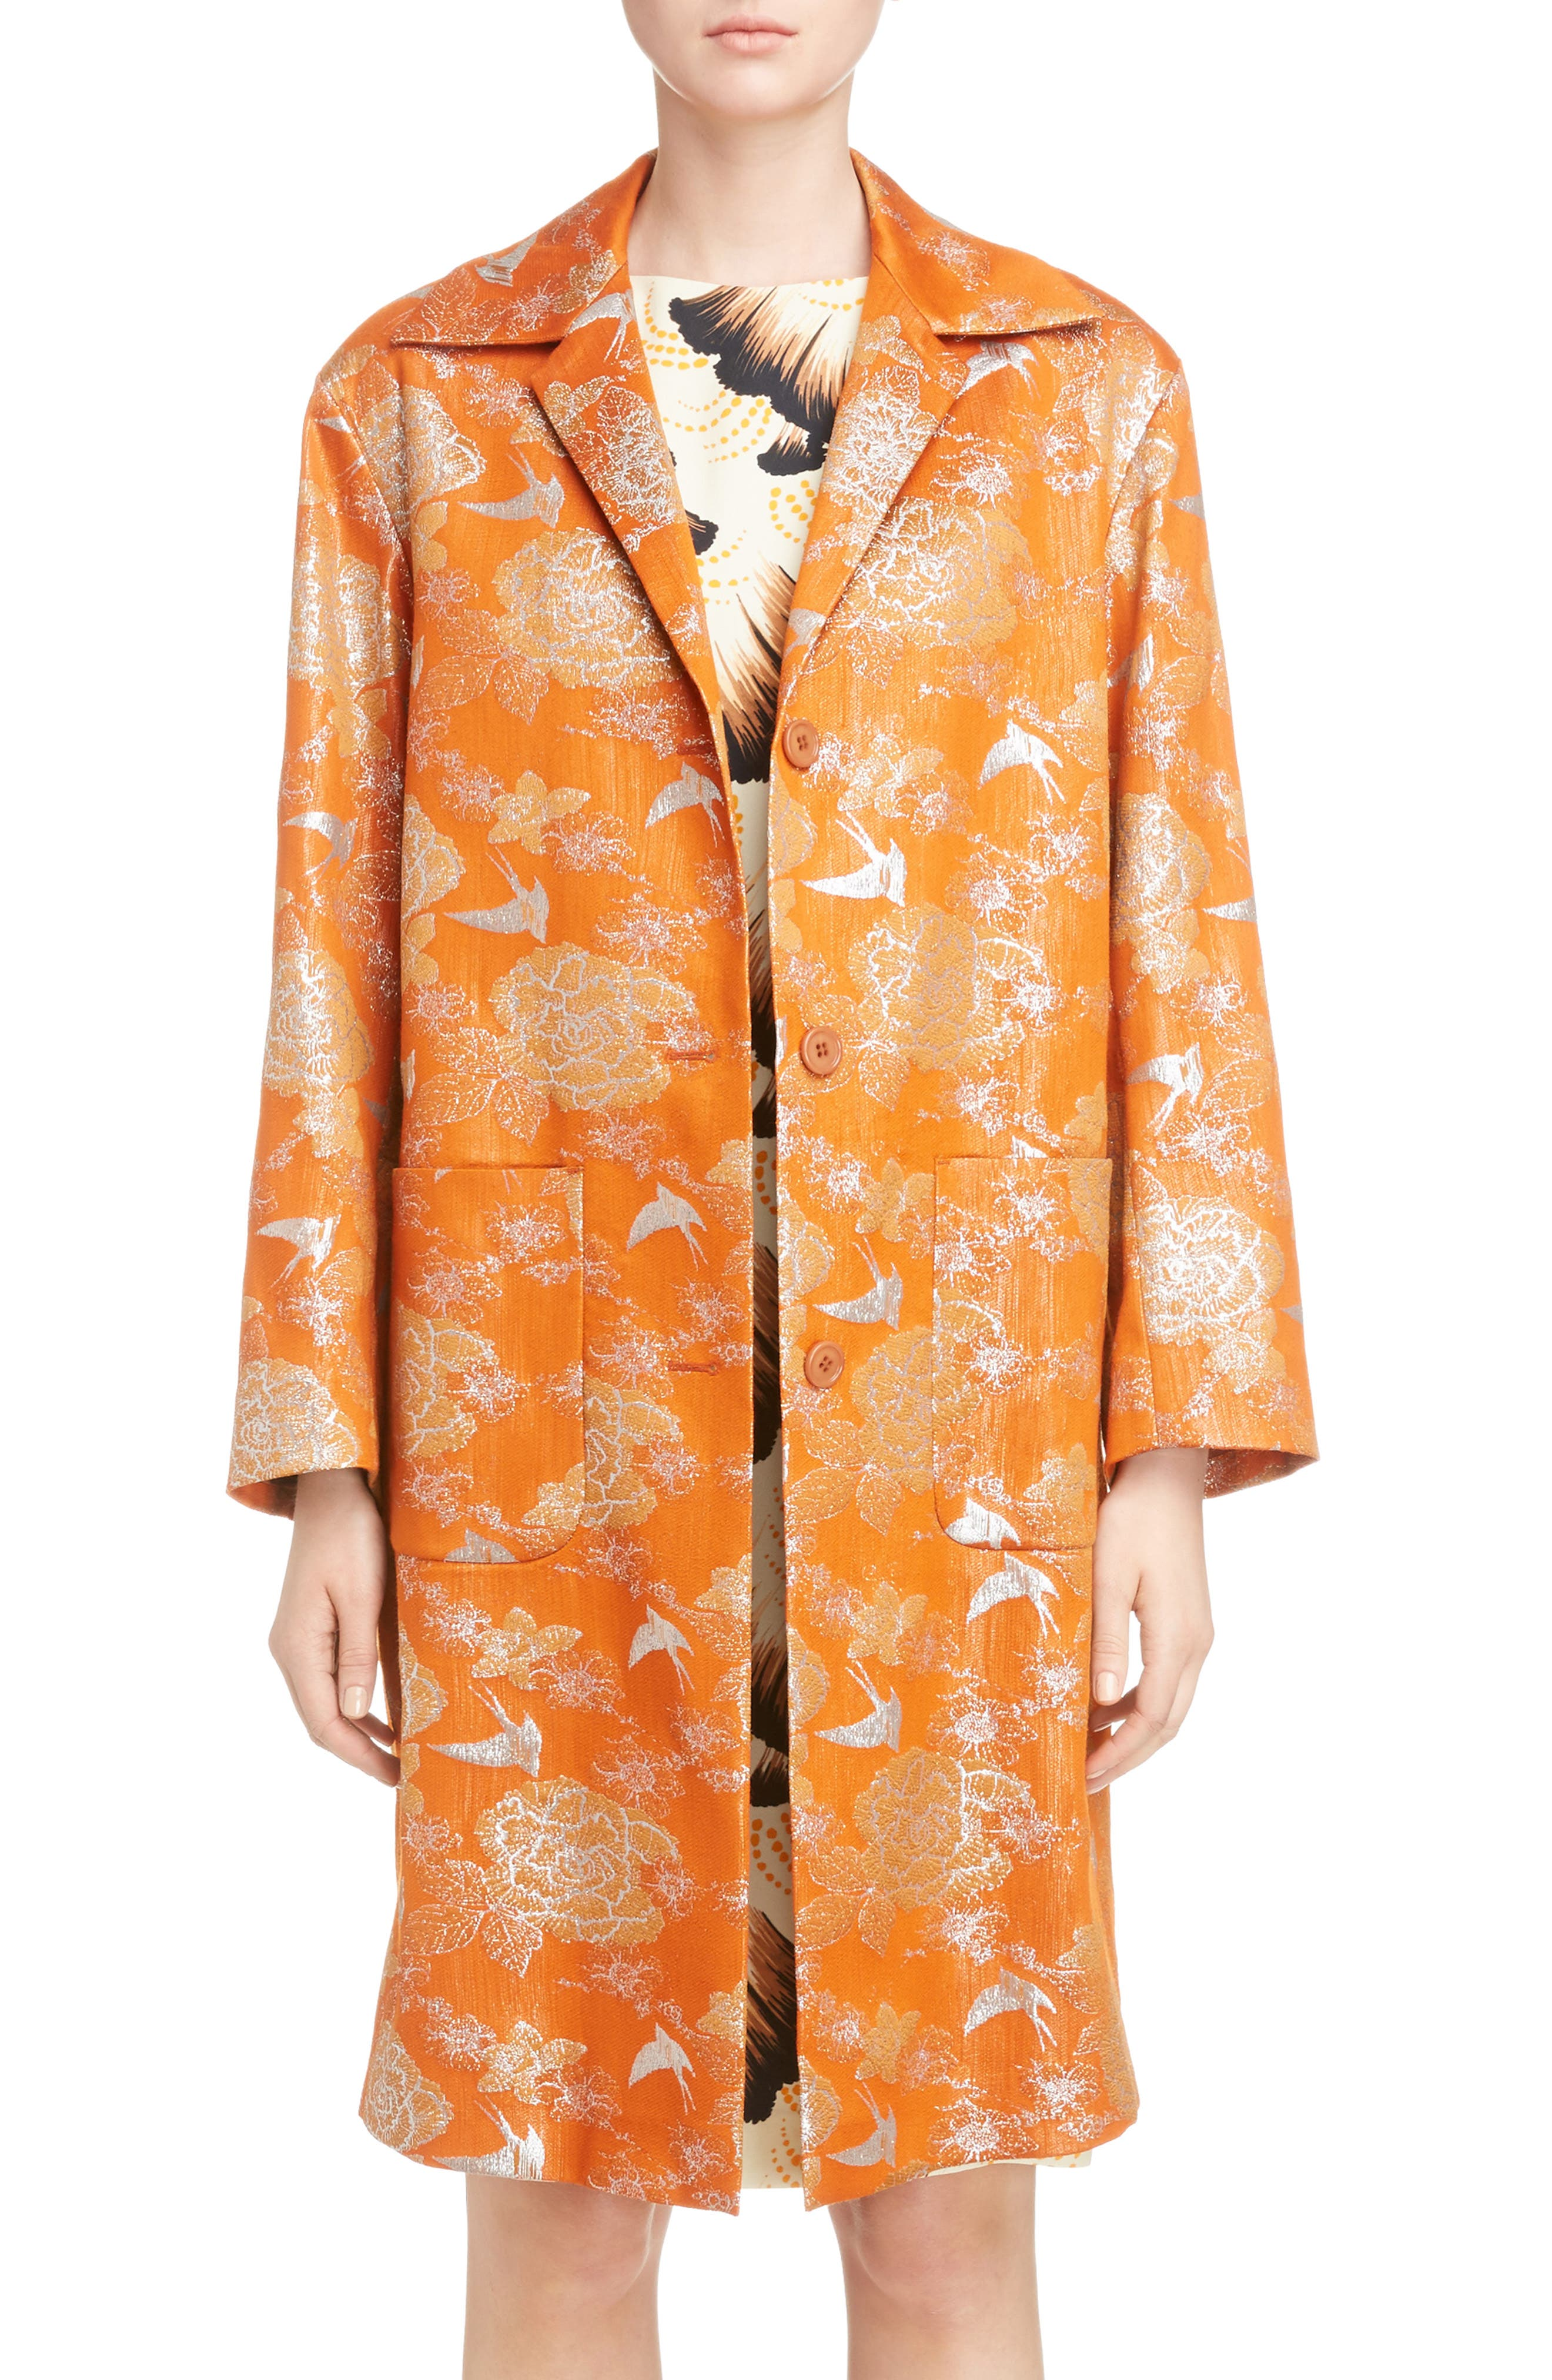 Silver Bird Jacquard Coat,                             Main thumbnail 1, color,                             800